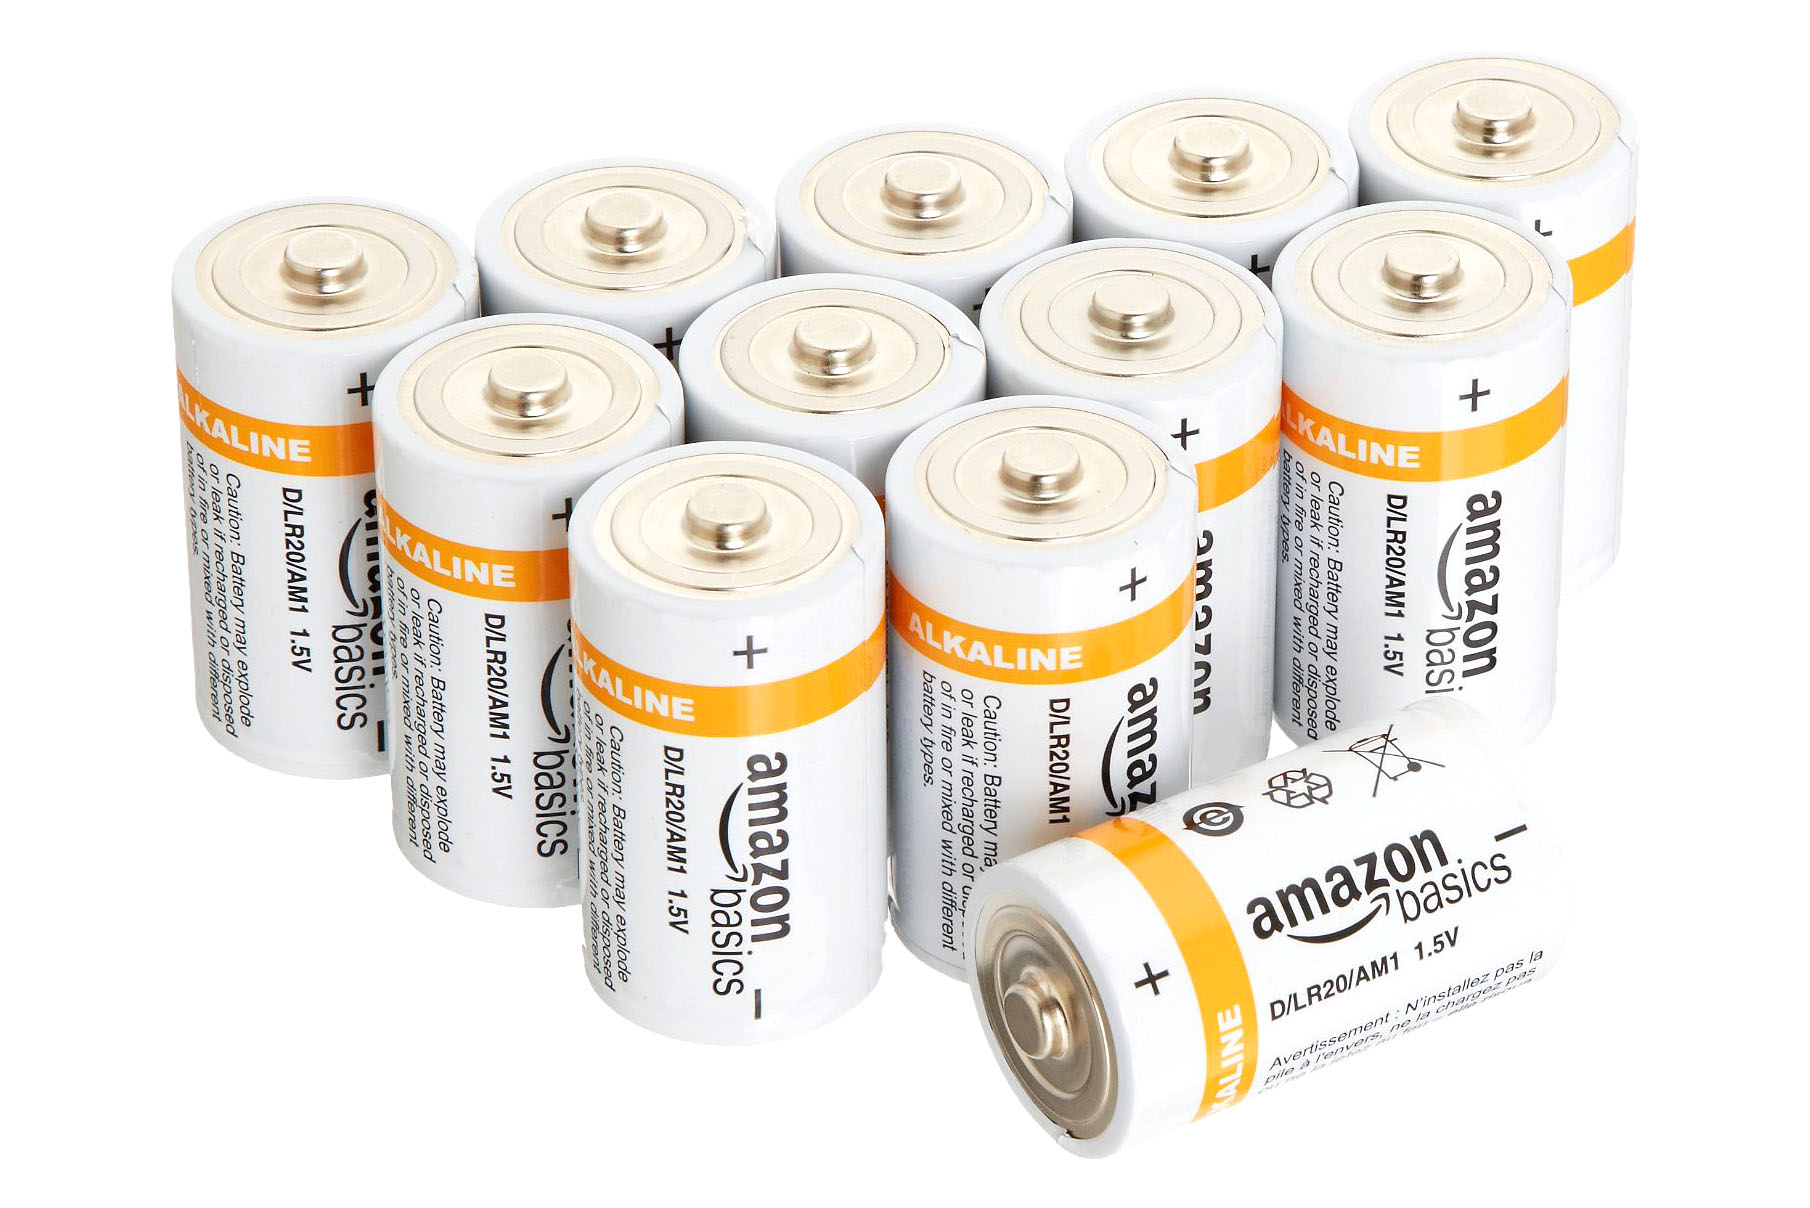 12 Pack D Batteries - 4.5 stars - $12 (Prime)